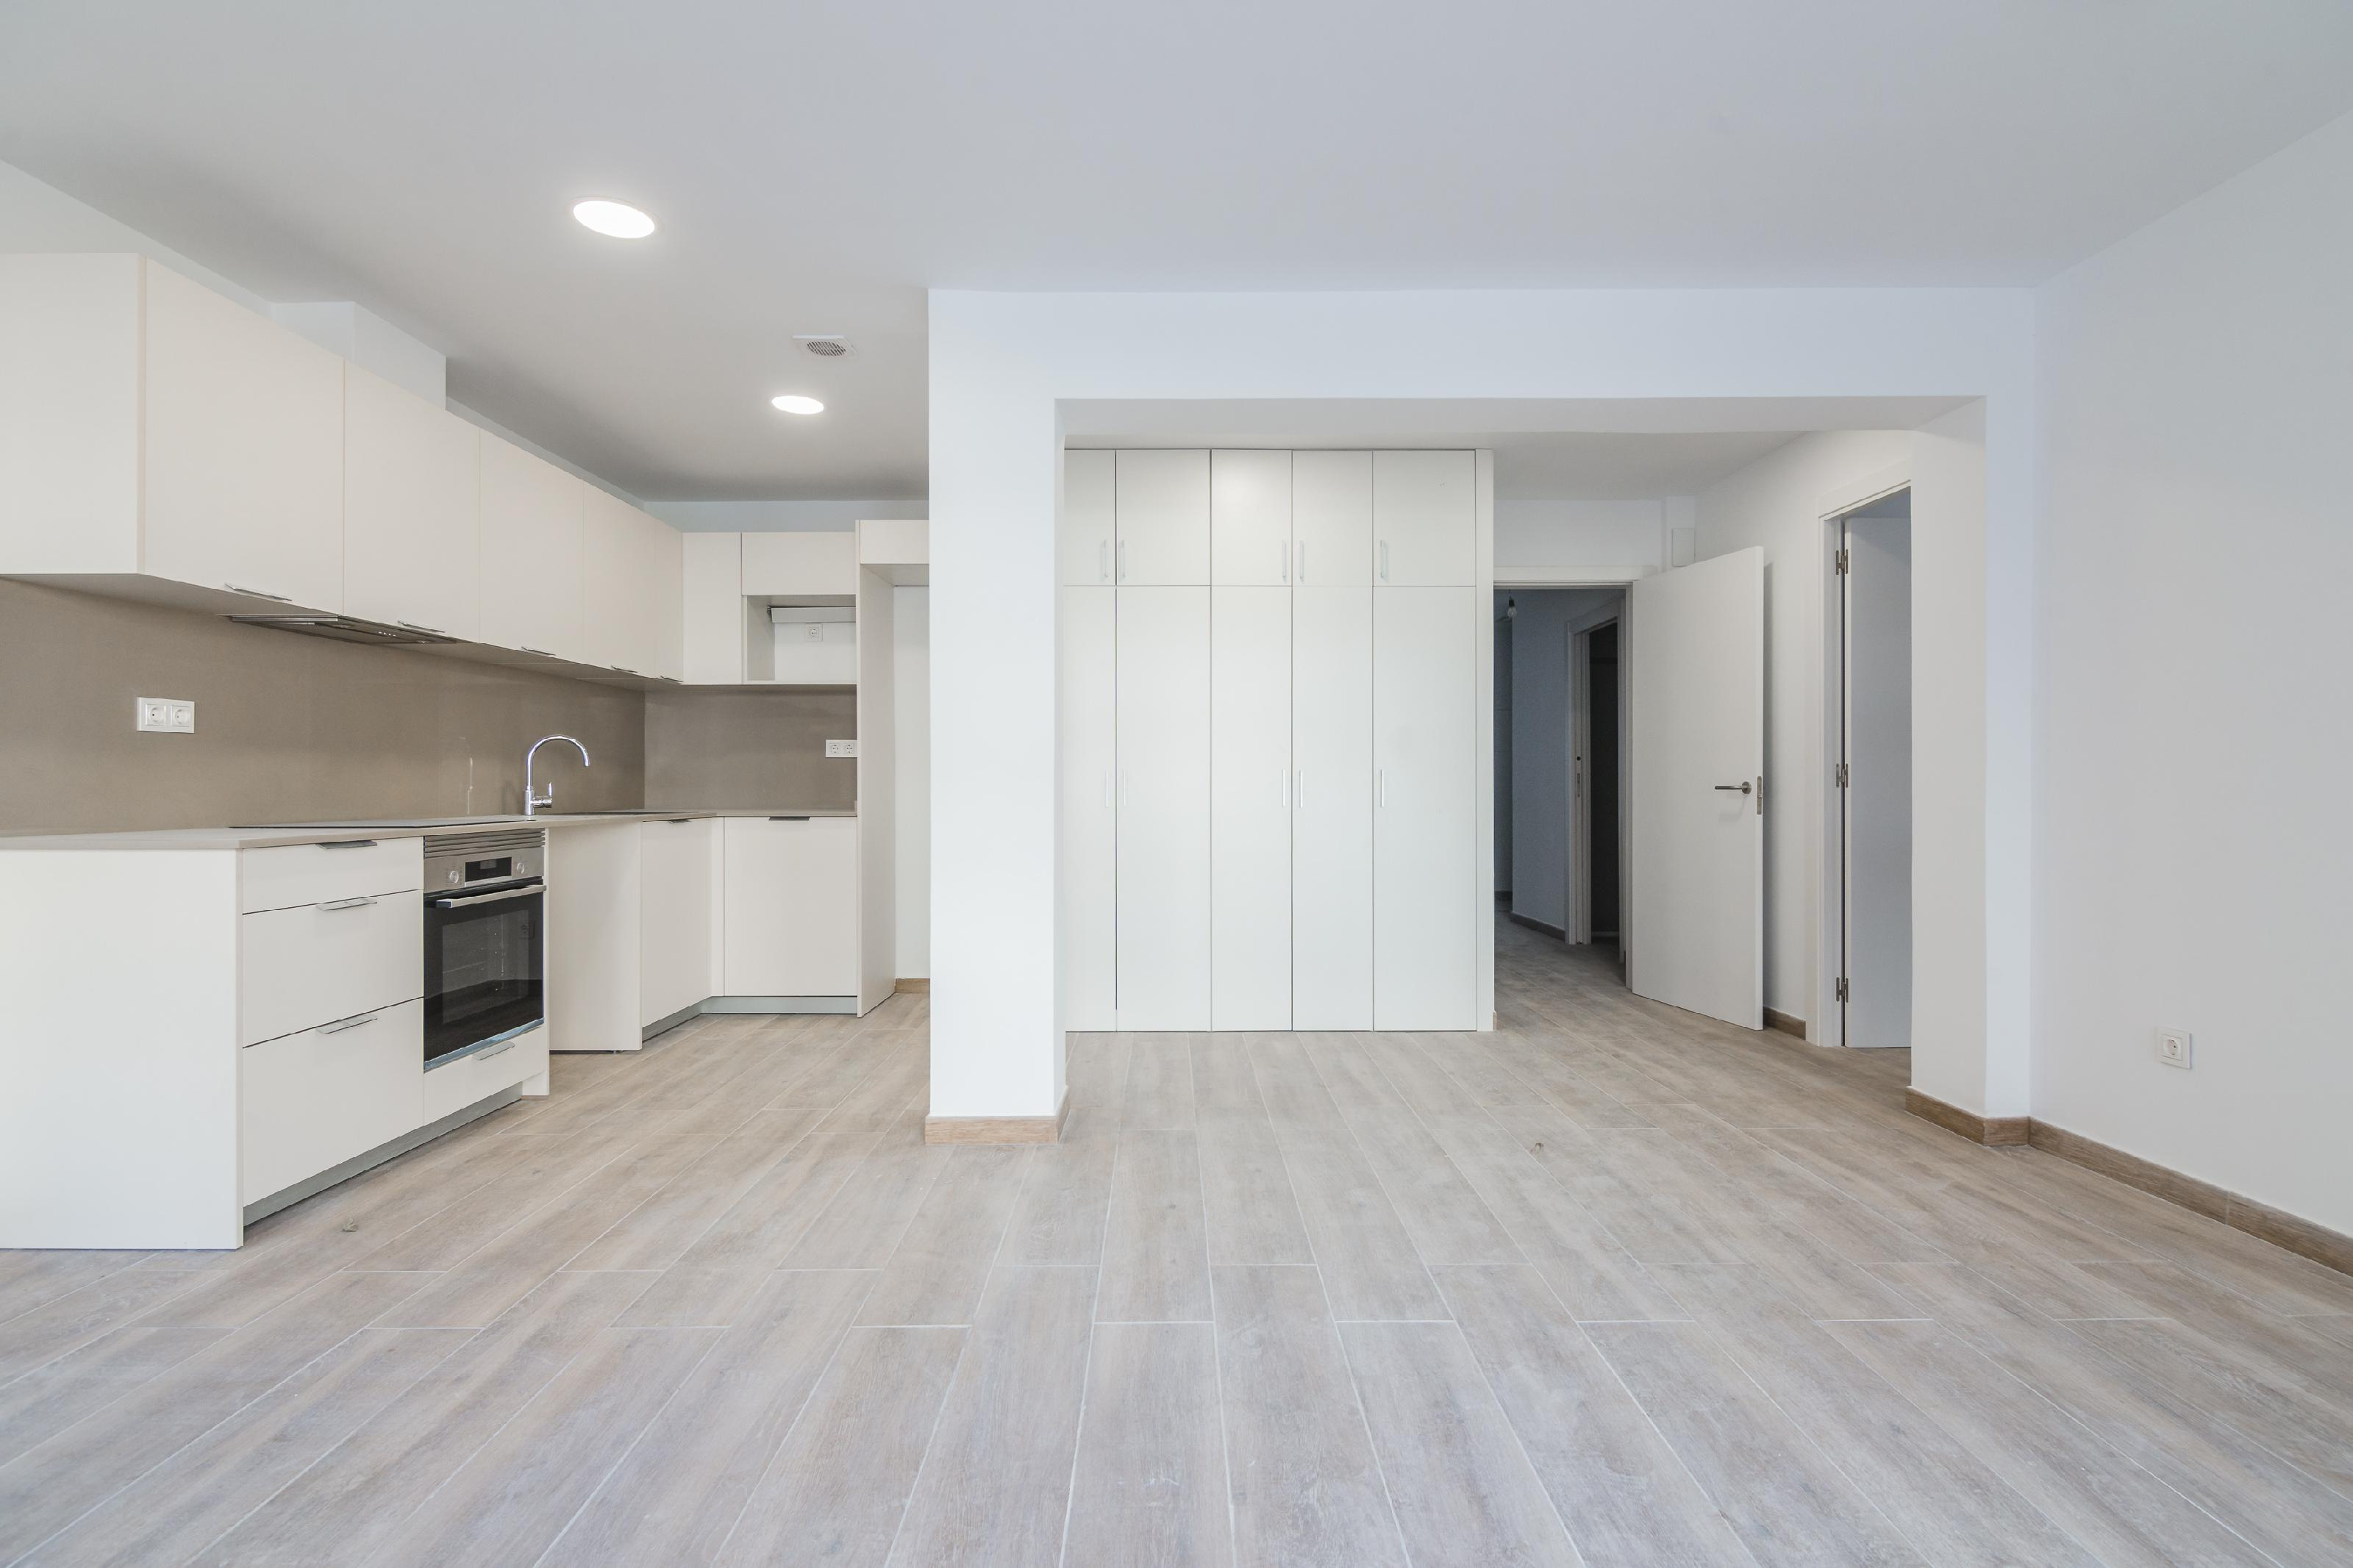 220653 Penthouse for sale in Sarrià-Sant Gervasi, Sant Gervasi-Galvany 17